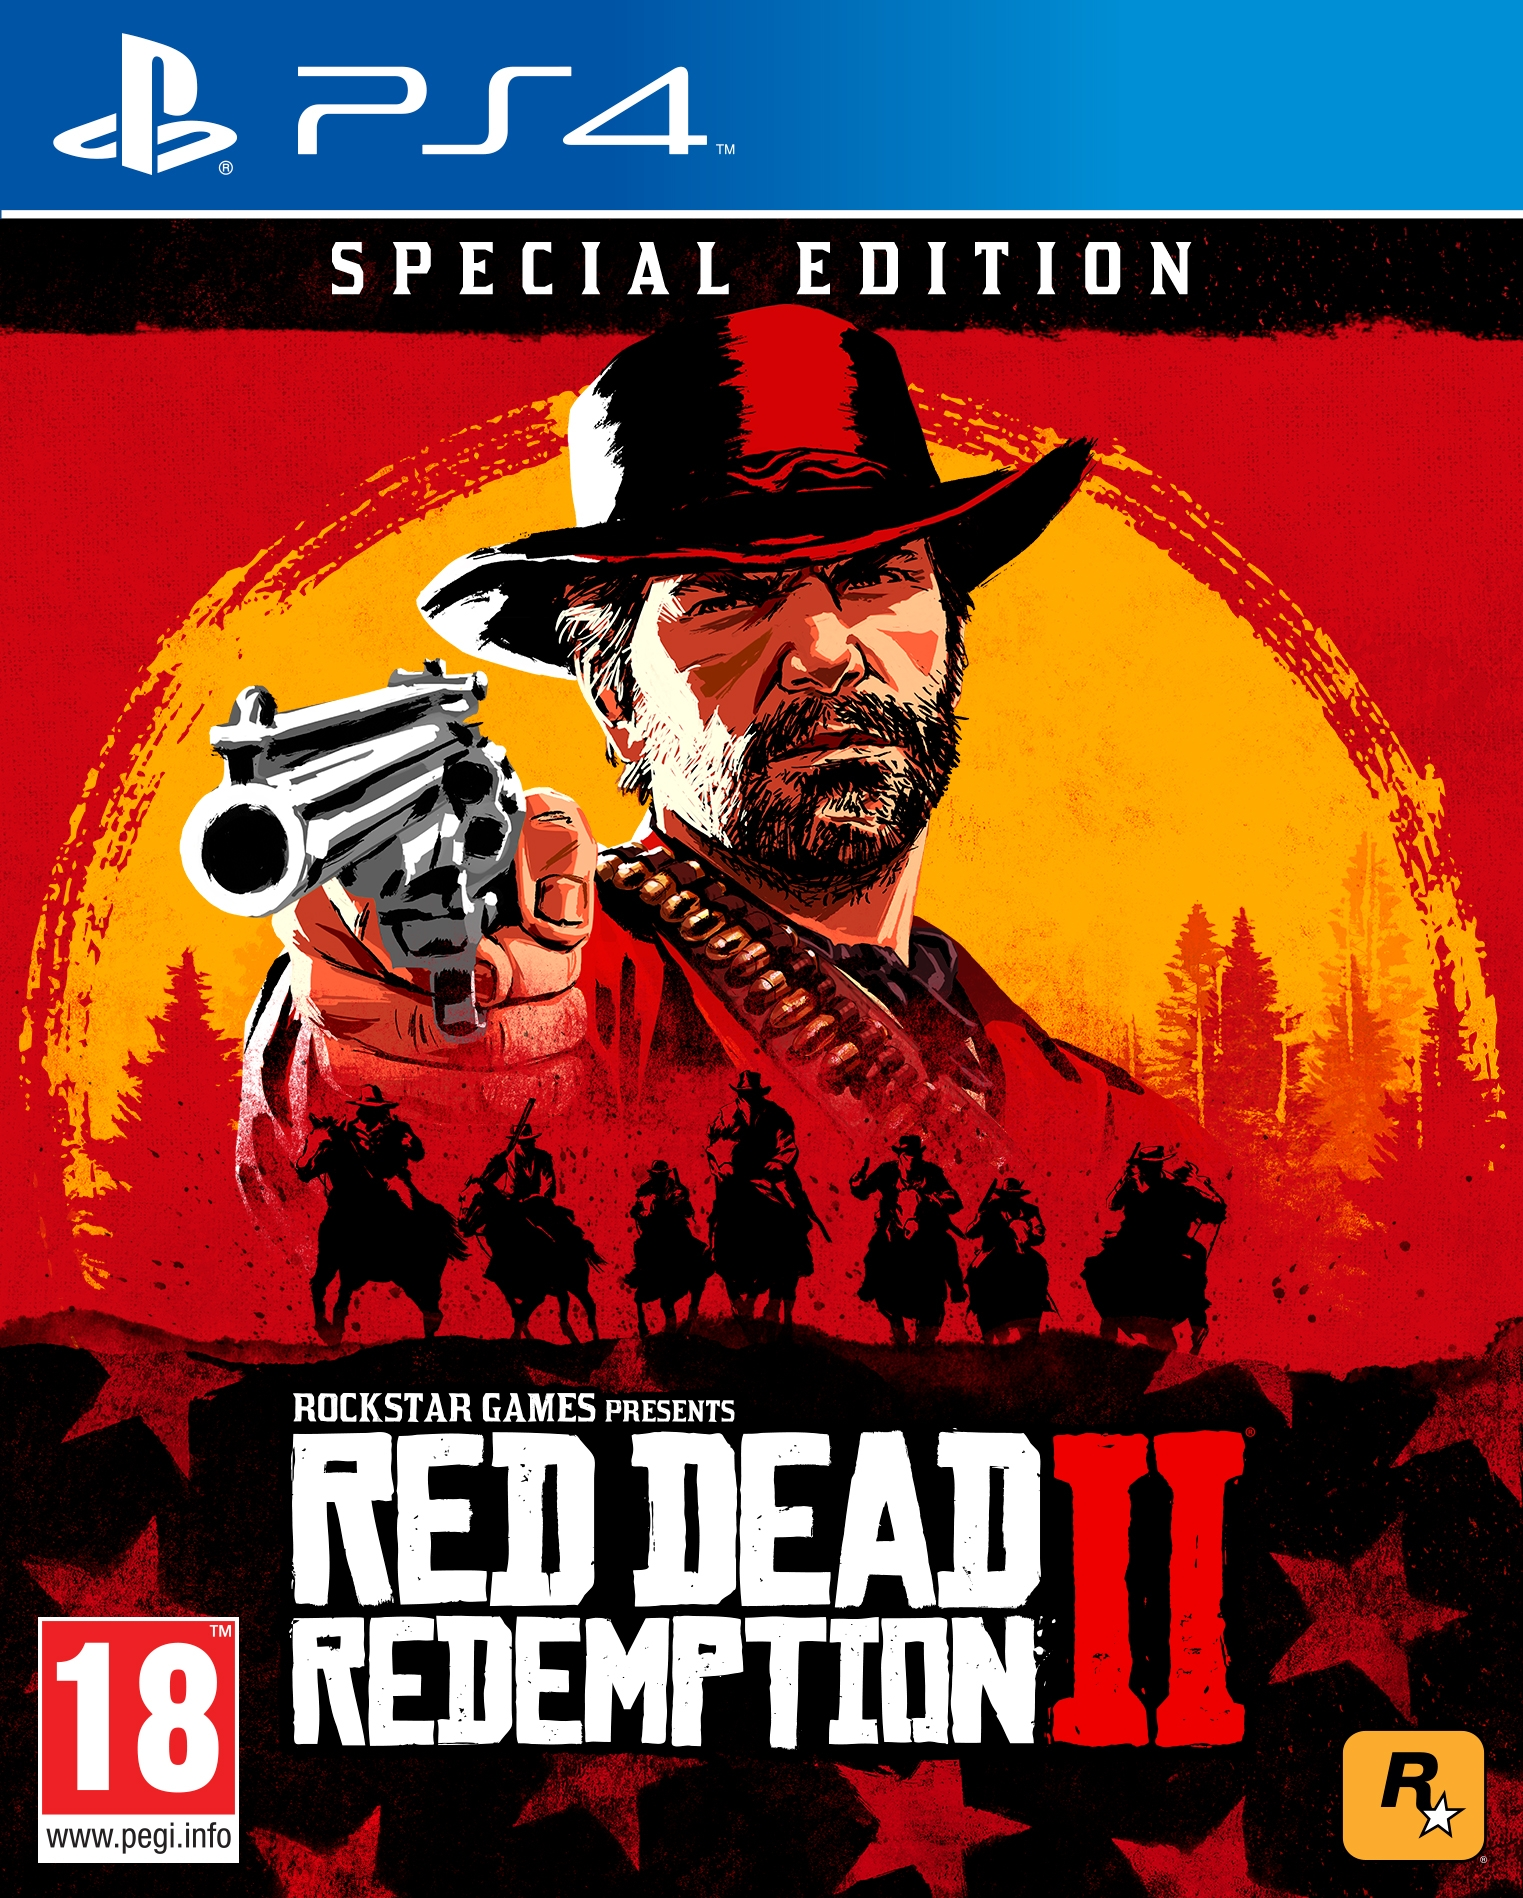 PS4 Red Dead Redemption 2 Special Edition / Take2 « Tooted « Gamestar